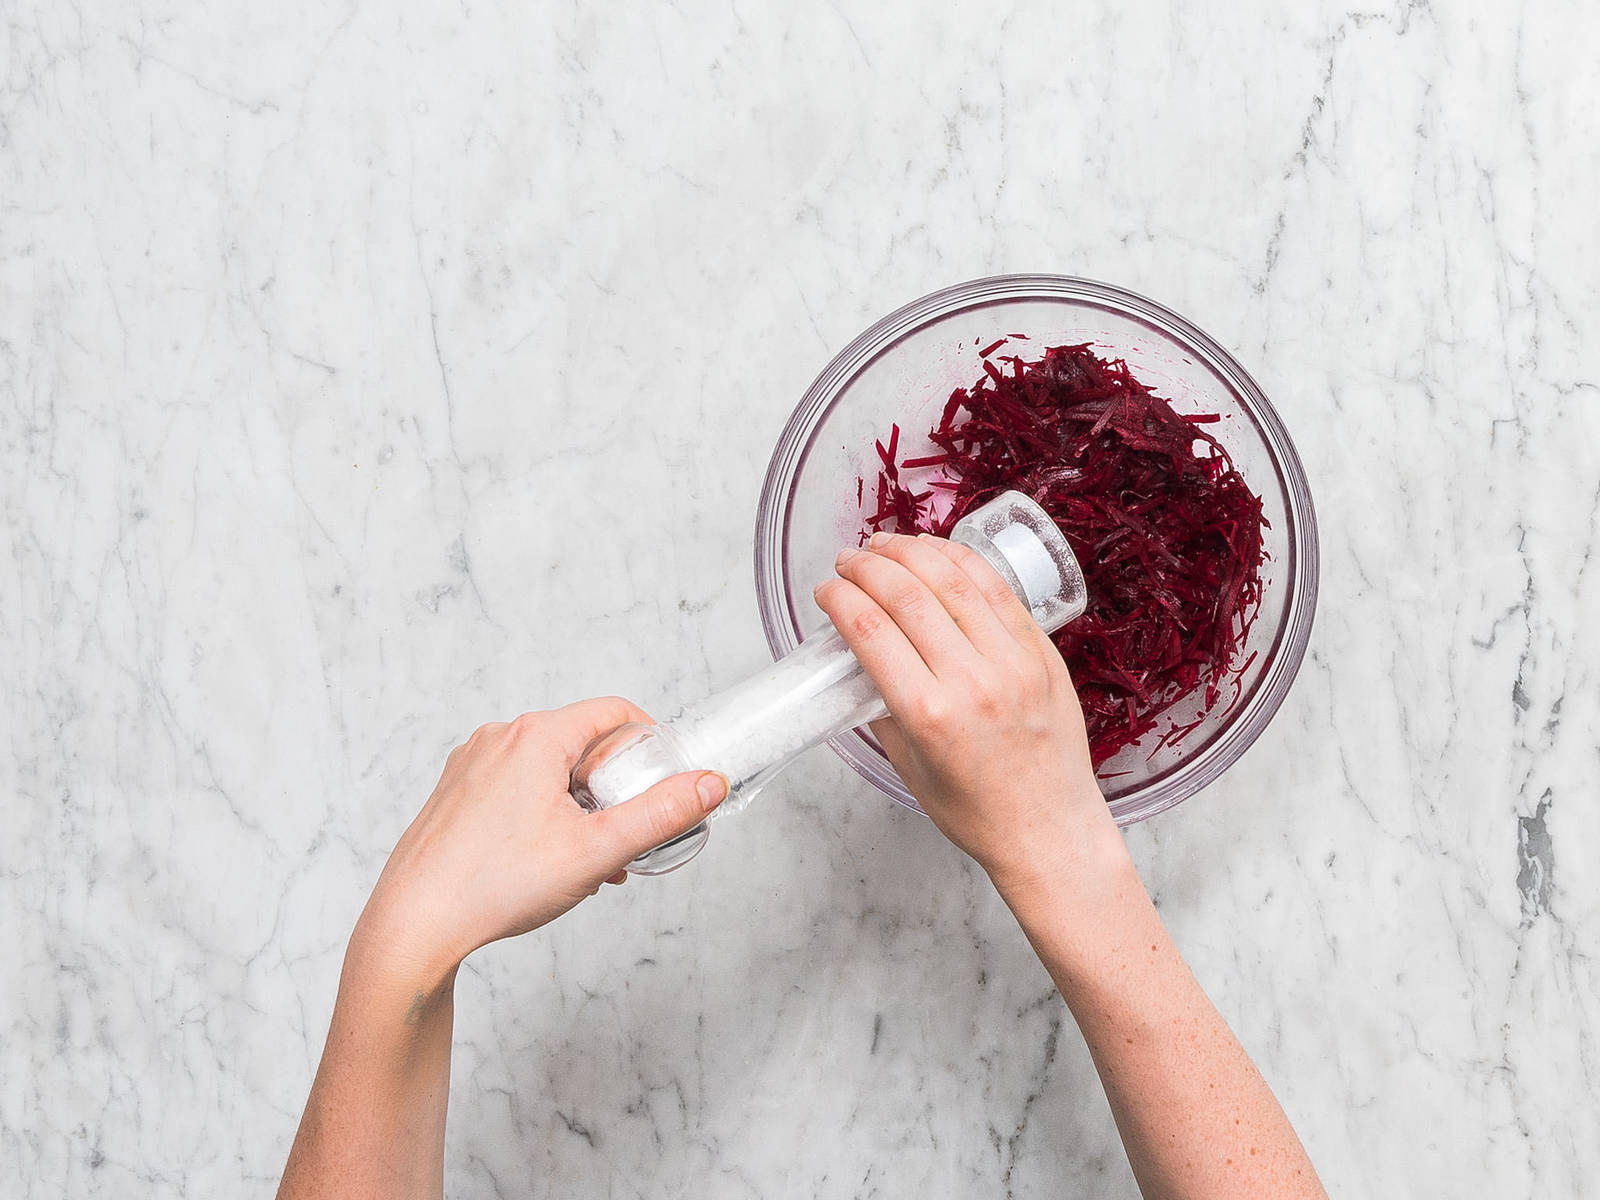 Preheat oven to 220°C/425°F. Julienne beetroot and transfer to a mixing bowl. Salt to taste and set aside to marinate.